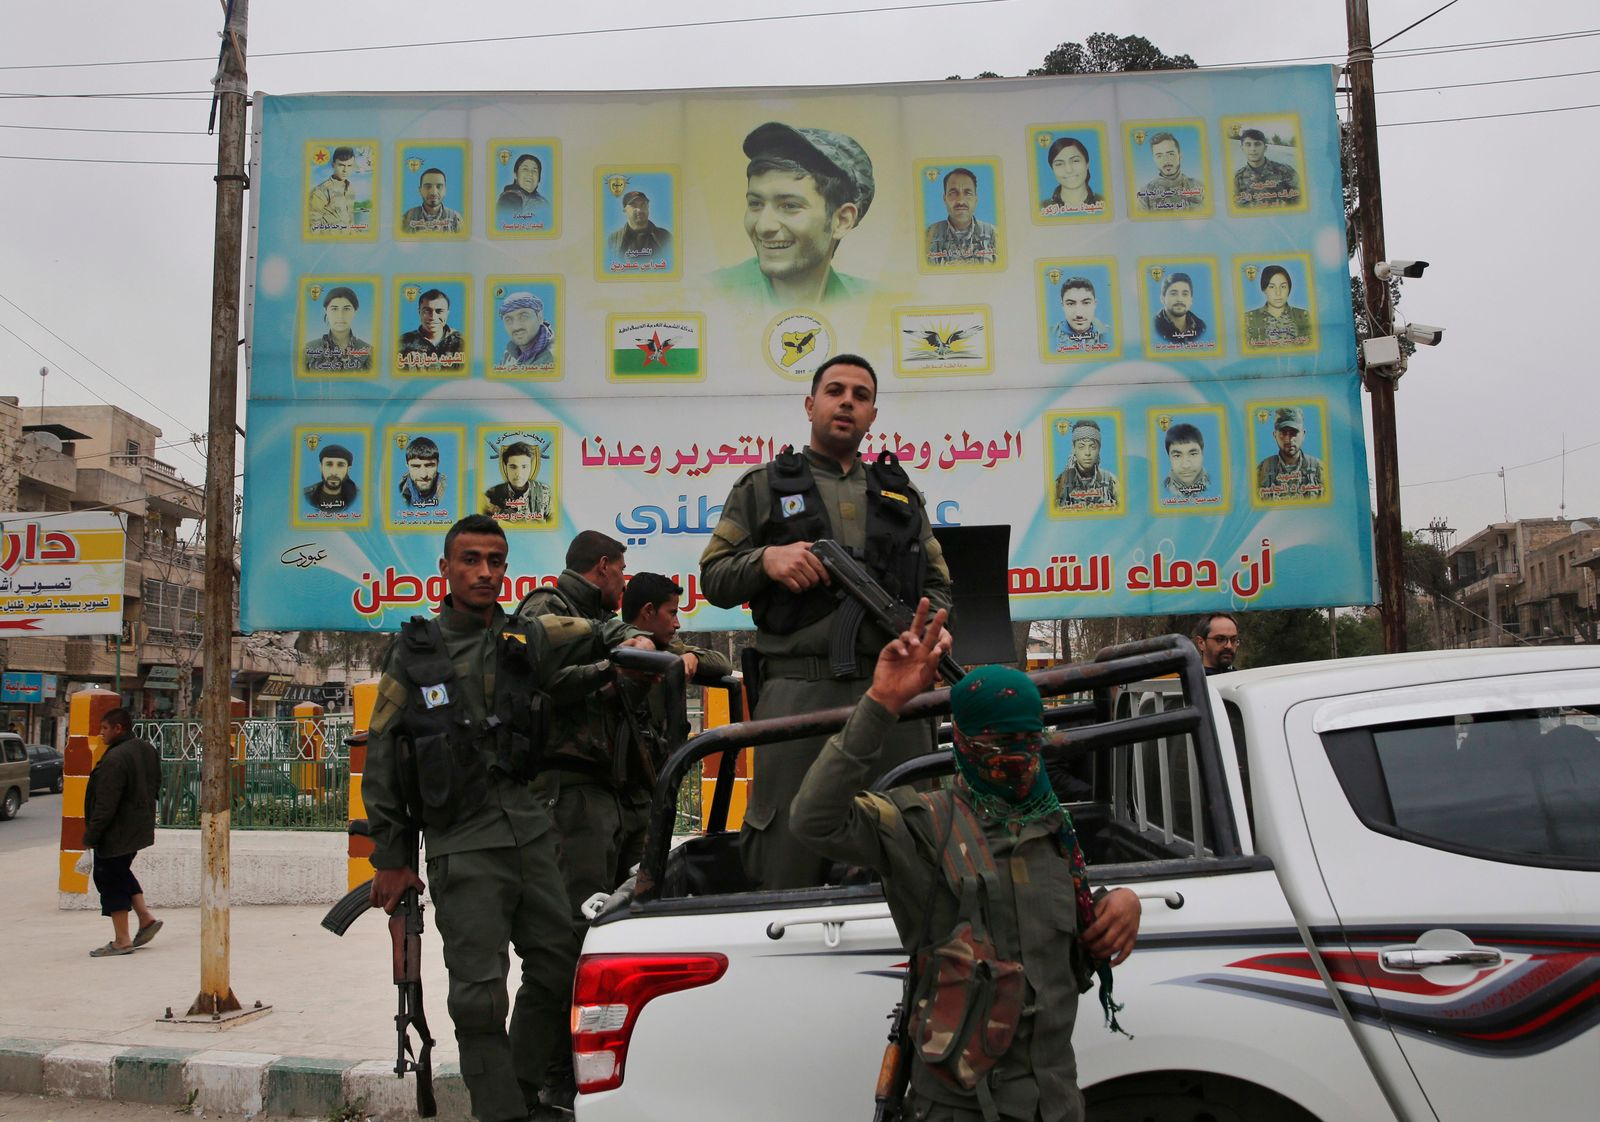 FILE - In this March 28, 2018 file photo, members of the Kurdish internal security forces stand on their vehicle in front of a giant poster showing portraits of fighters killed fighting against the Islamic State group, in Manbij, north Syria. On Friday, Dec. 28, 2018, Syria's military announced it has taken control the flash-point Kurdish-held town of Manbij, where Turkey has threatened an offensive. The announcement Friday came shortly after the main Syrian Kurdish militia invited the government to seize control of Manbij to prevent an attack. (AP Photo/Hussein Malla, File)